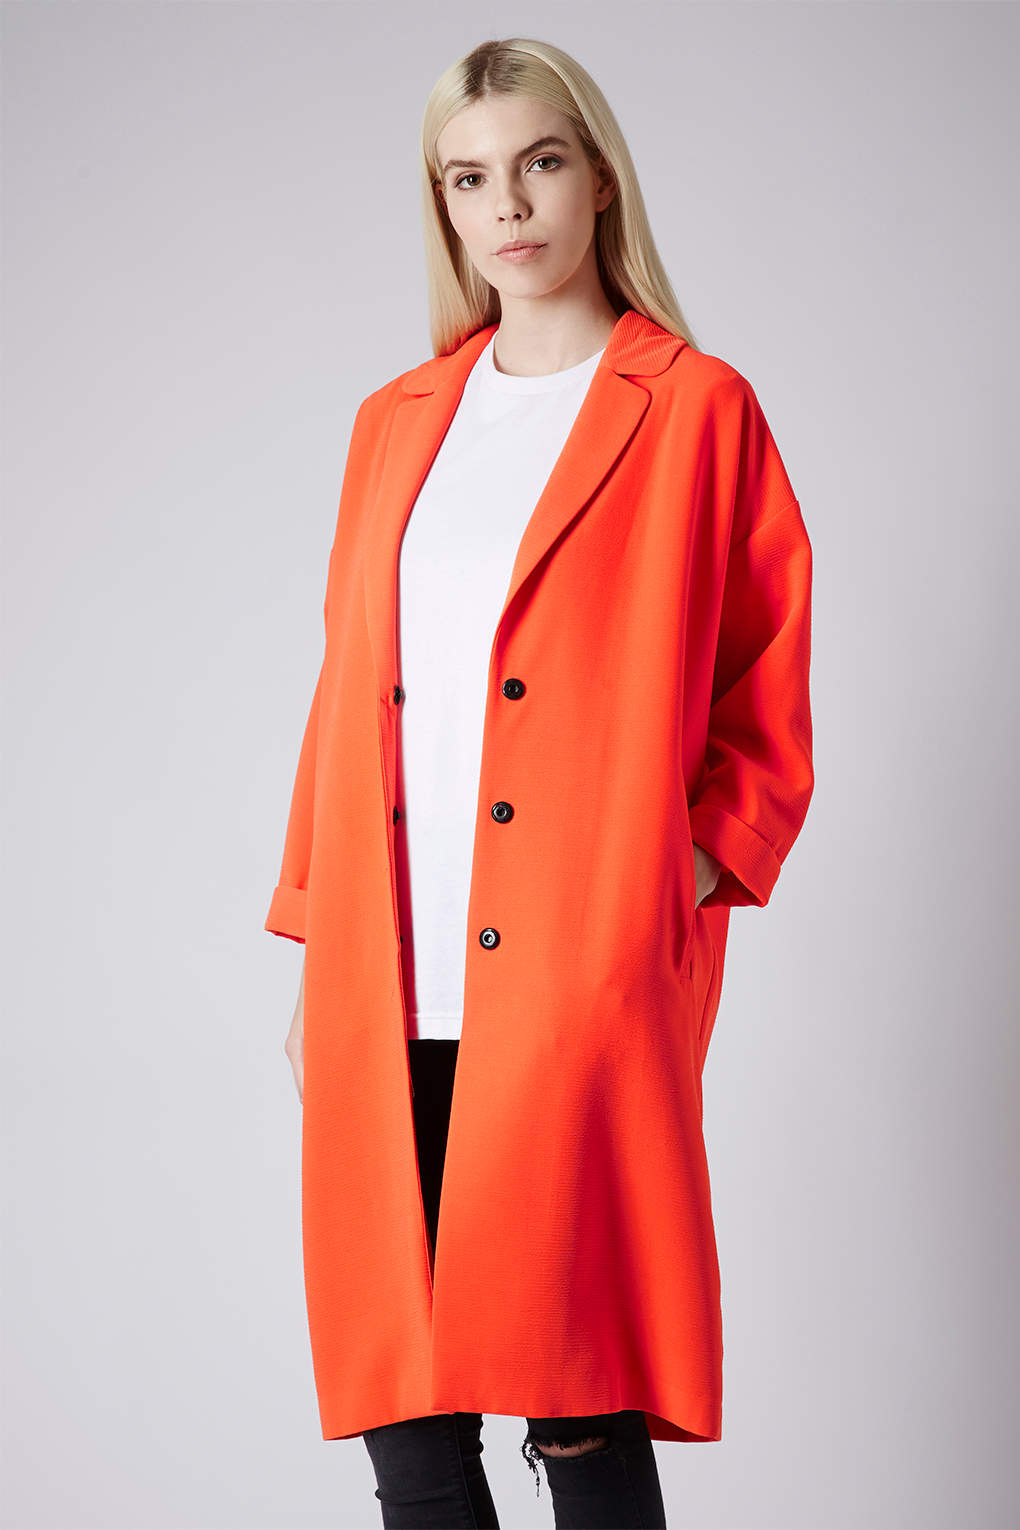 lyst topshop long line duster coat in orange. Black Bedroom Furniture Sets. Home Design Ideas